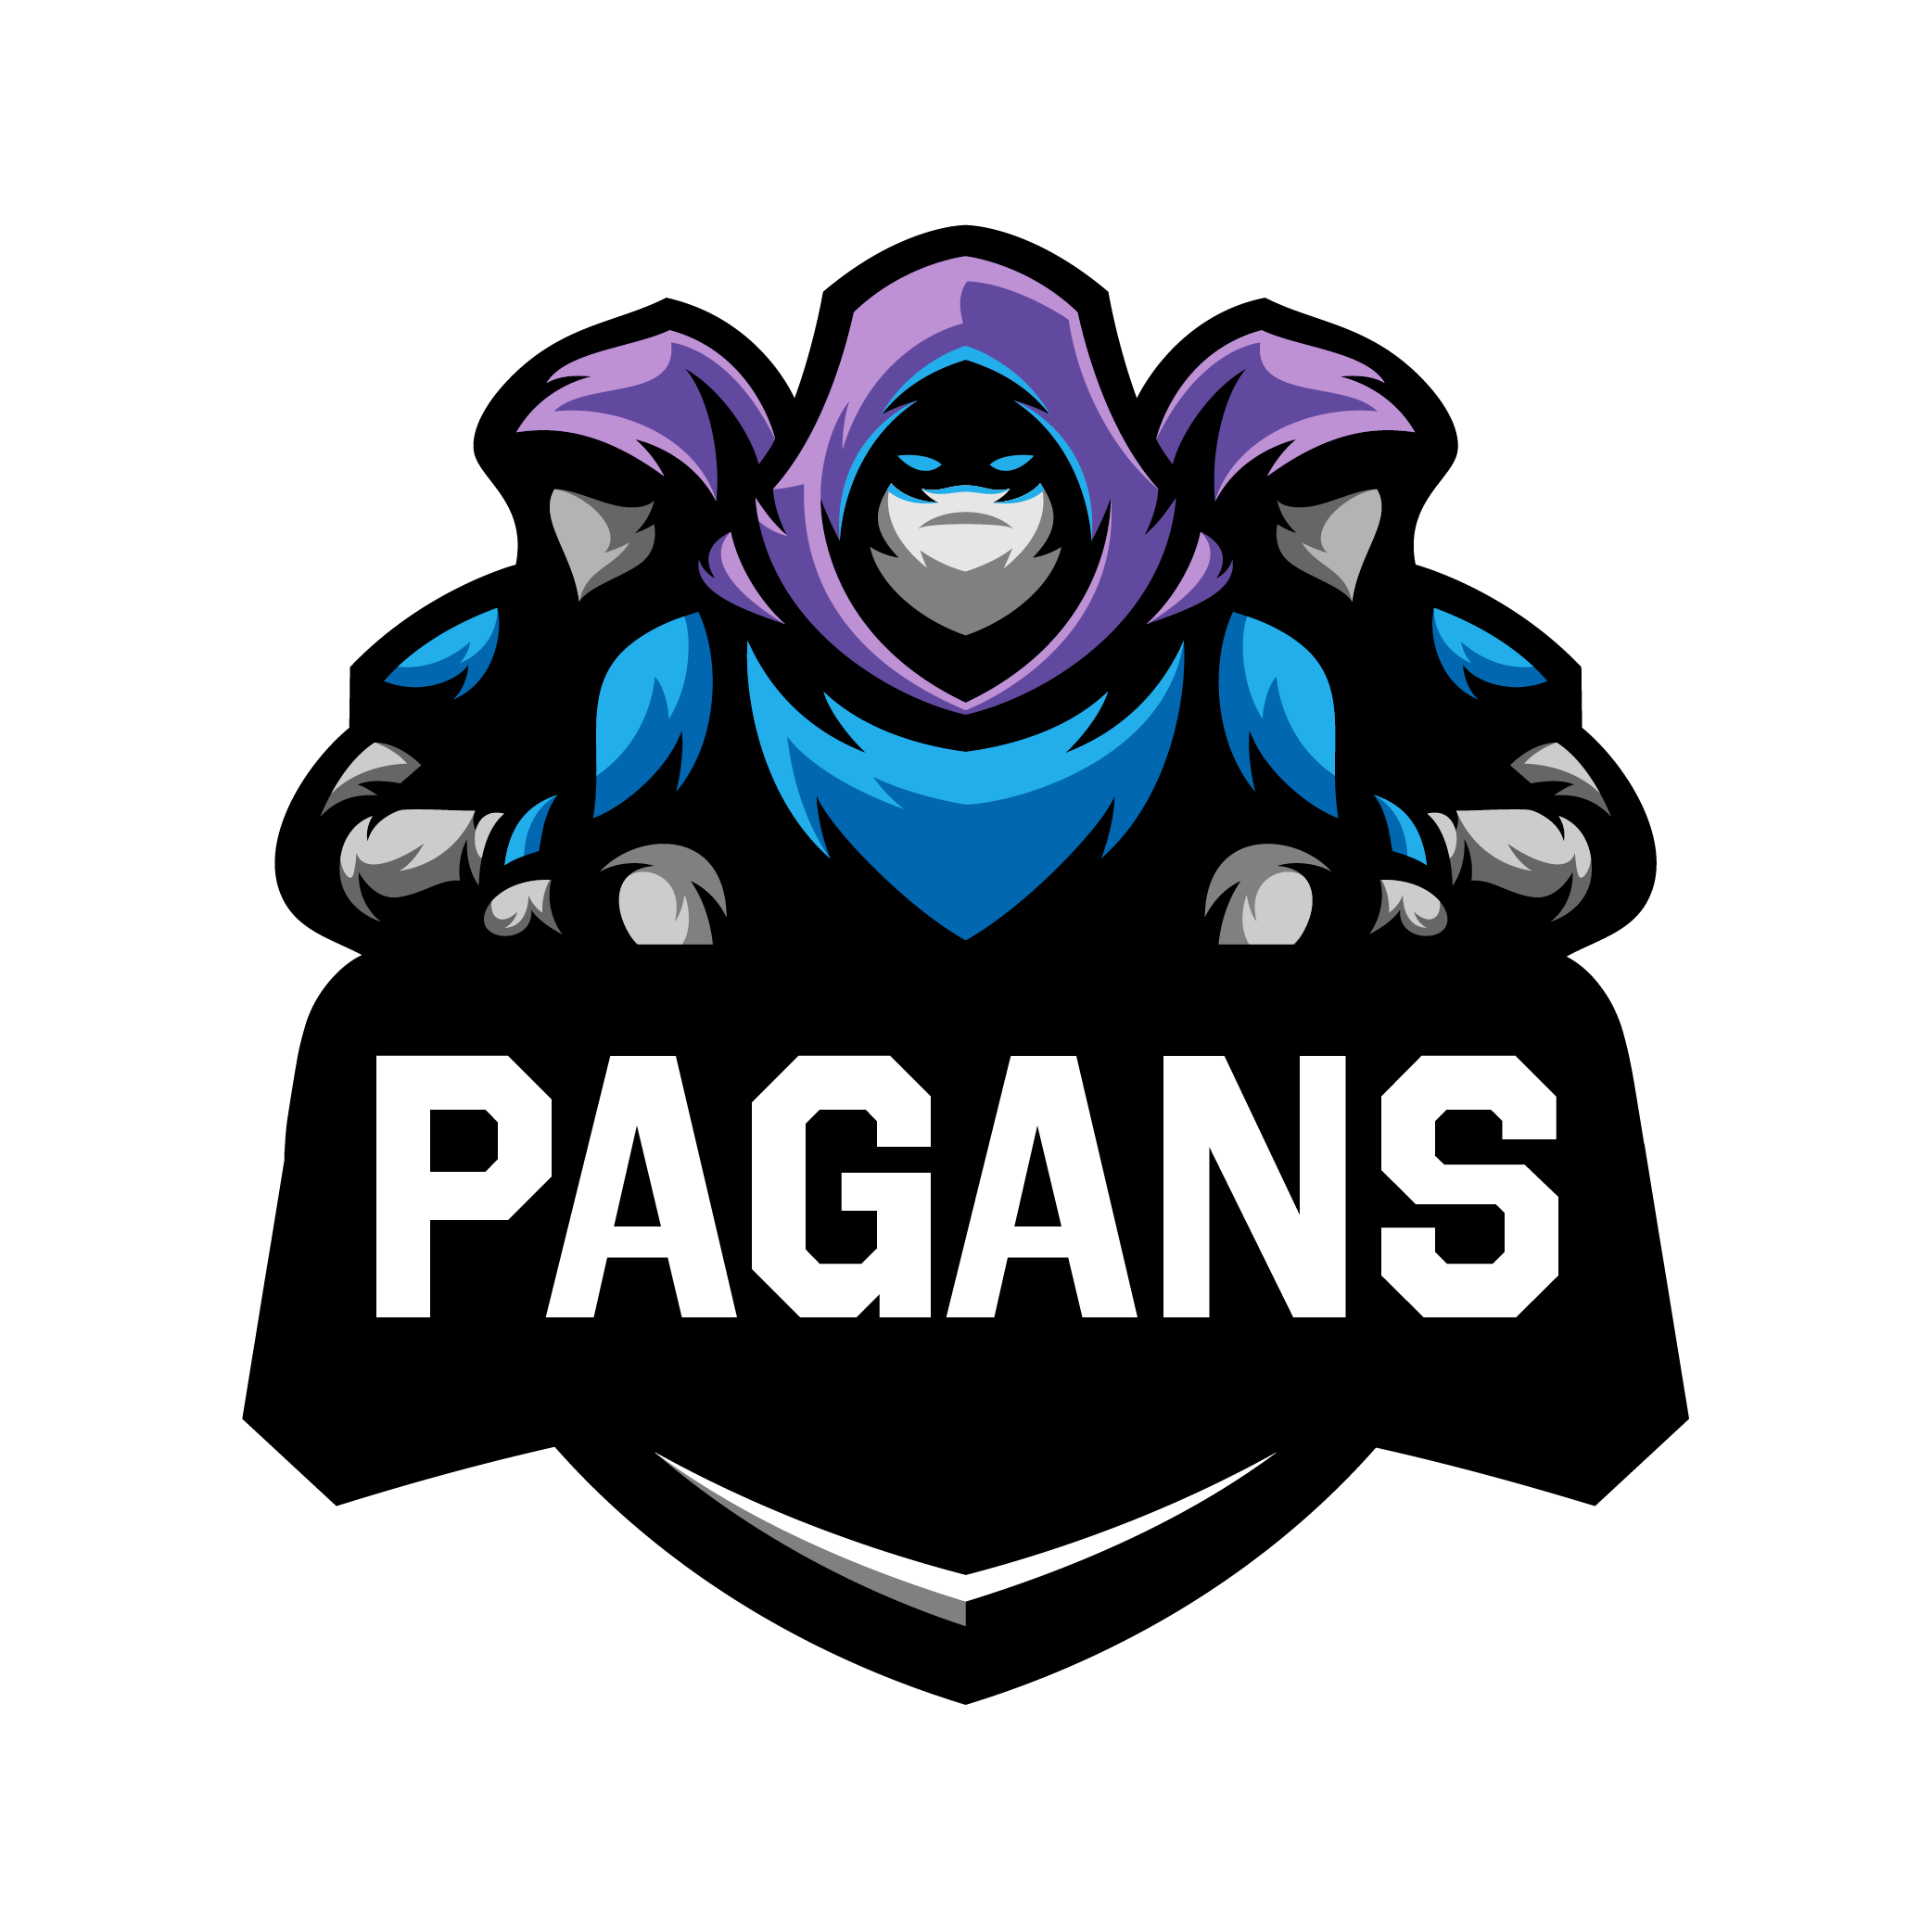 Pagans Volleyball Graphic